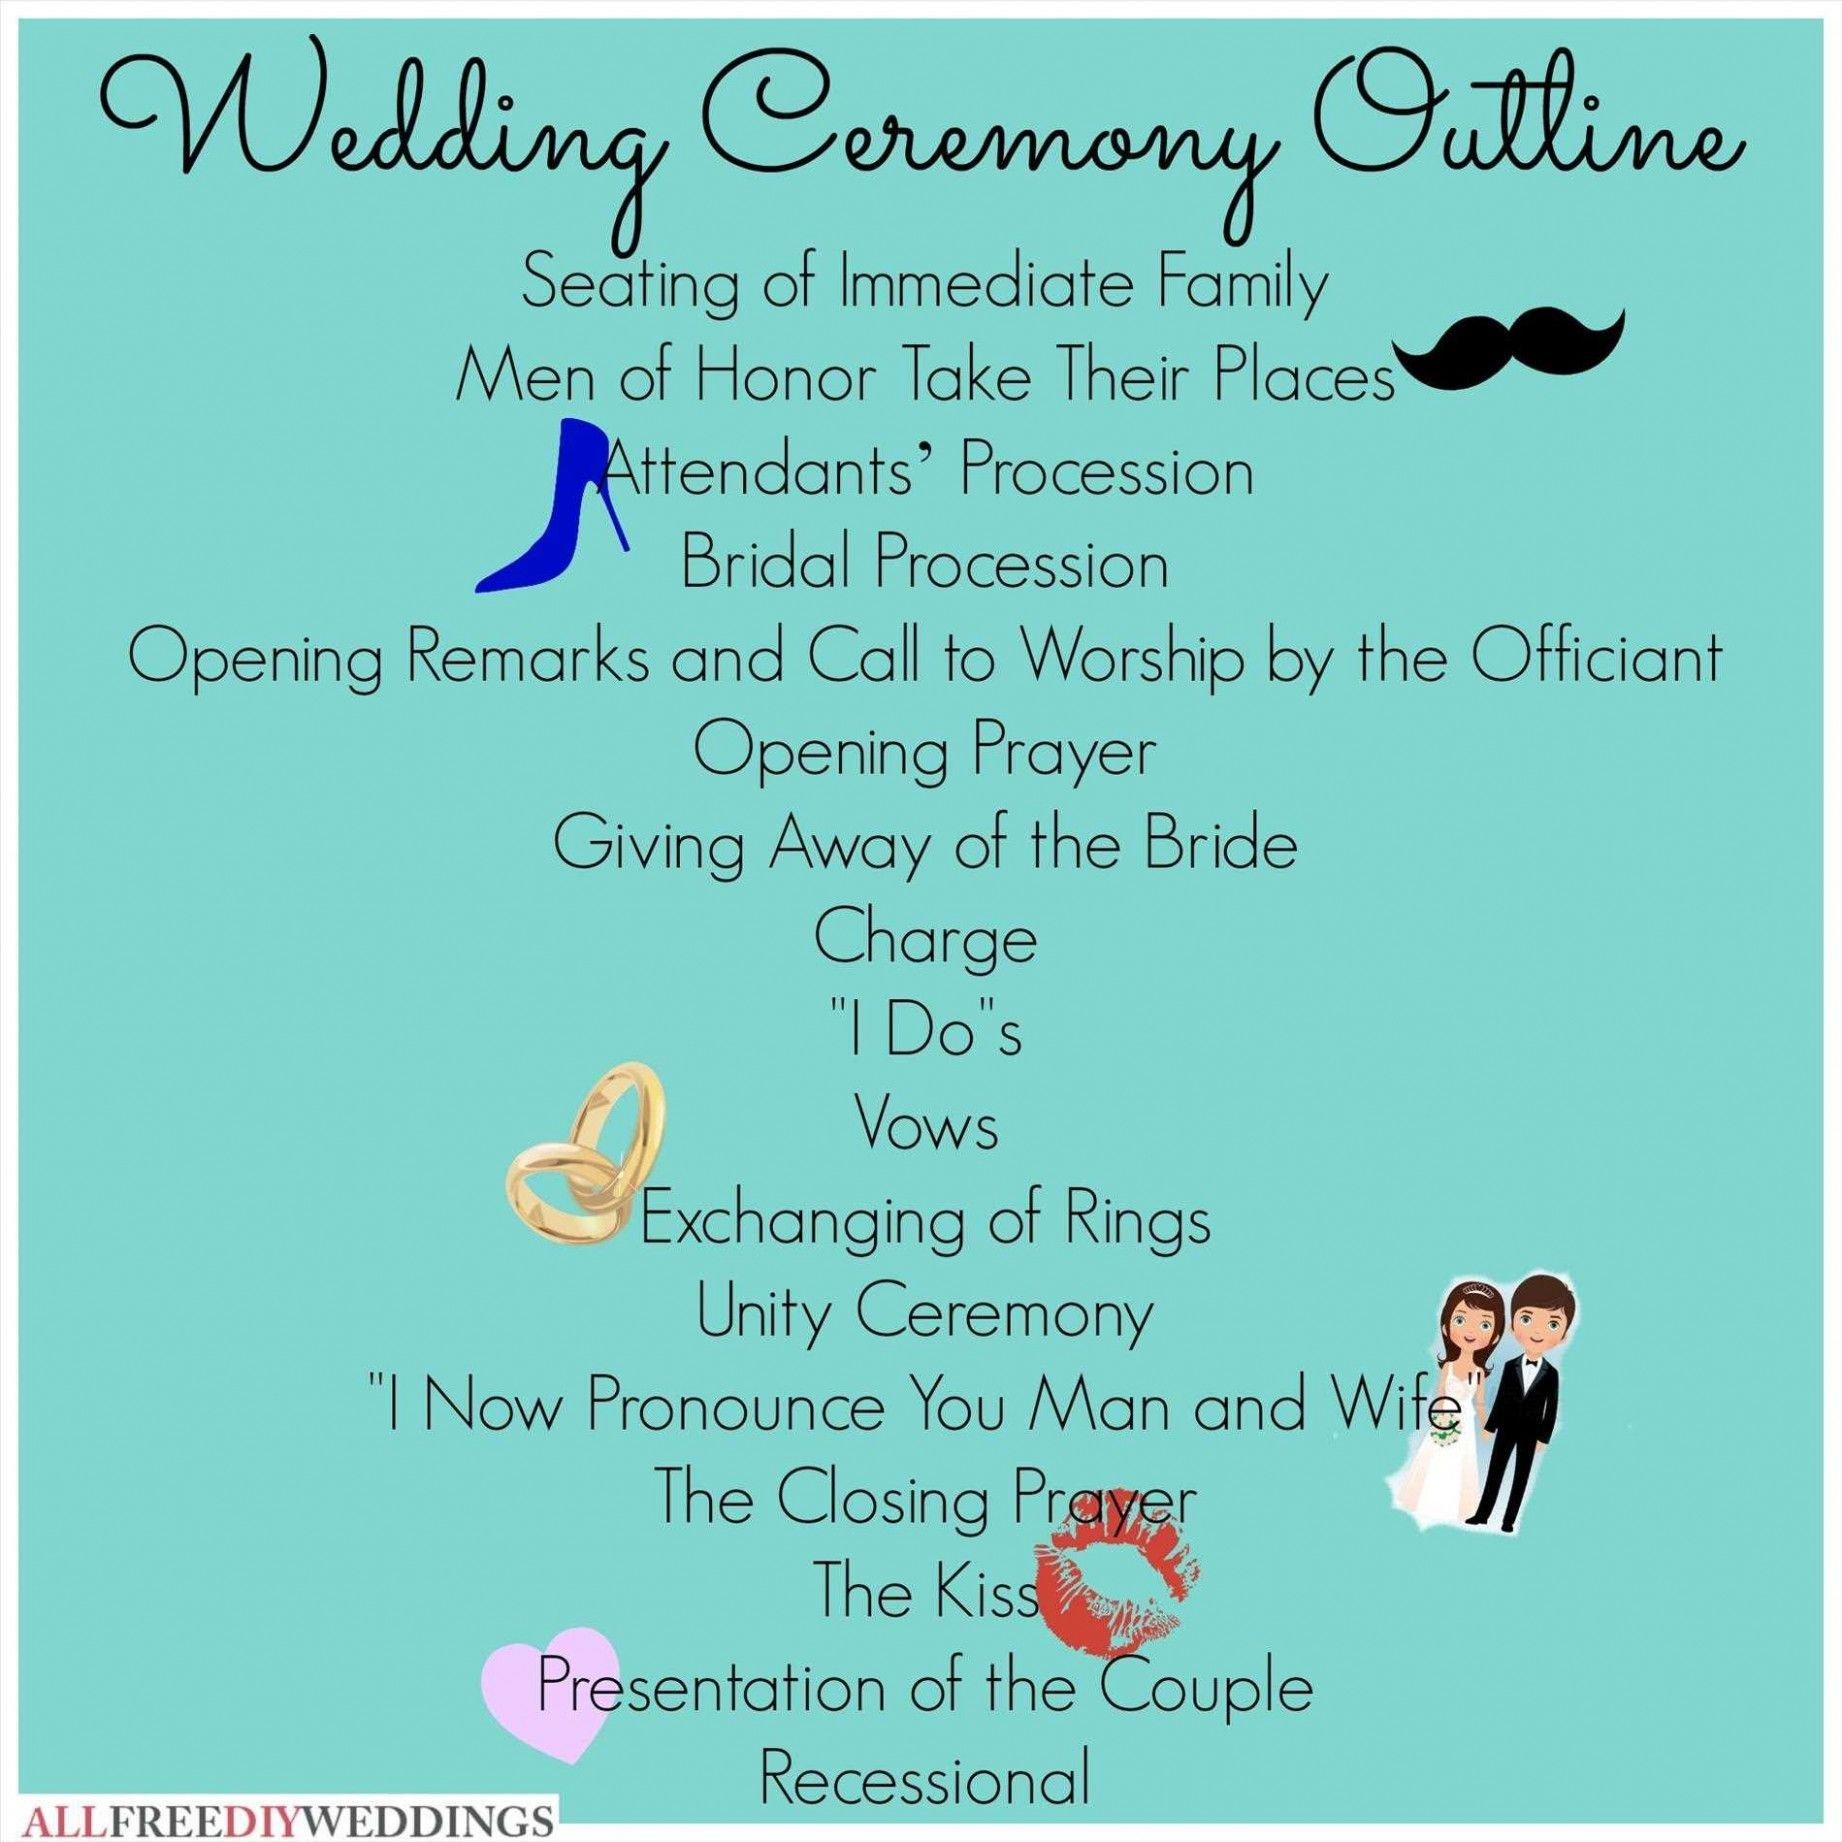 15+ Short wedding ceremony script with own vows ideas